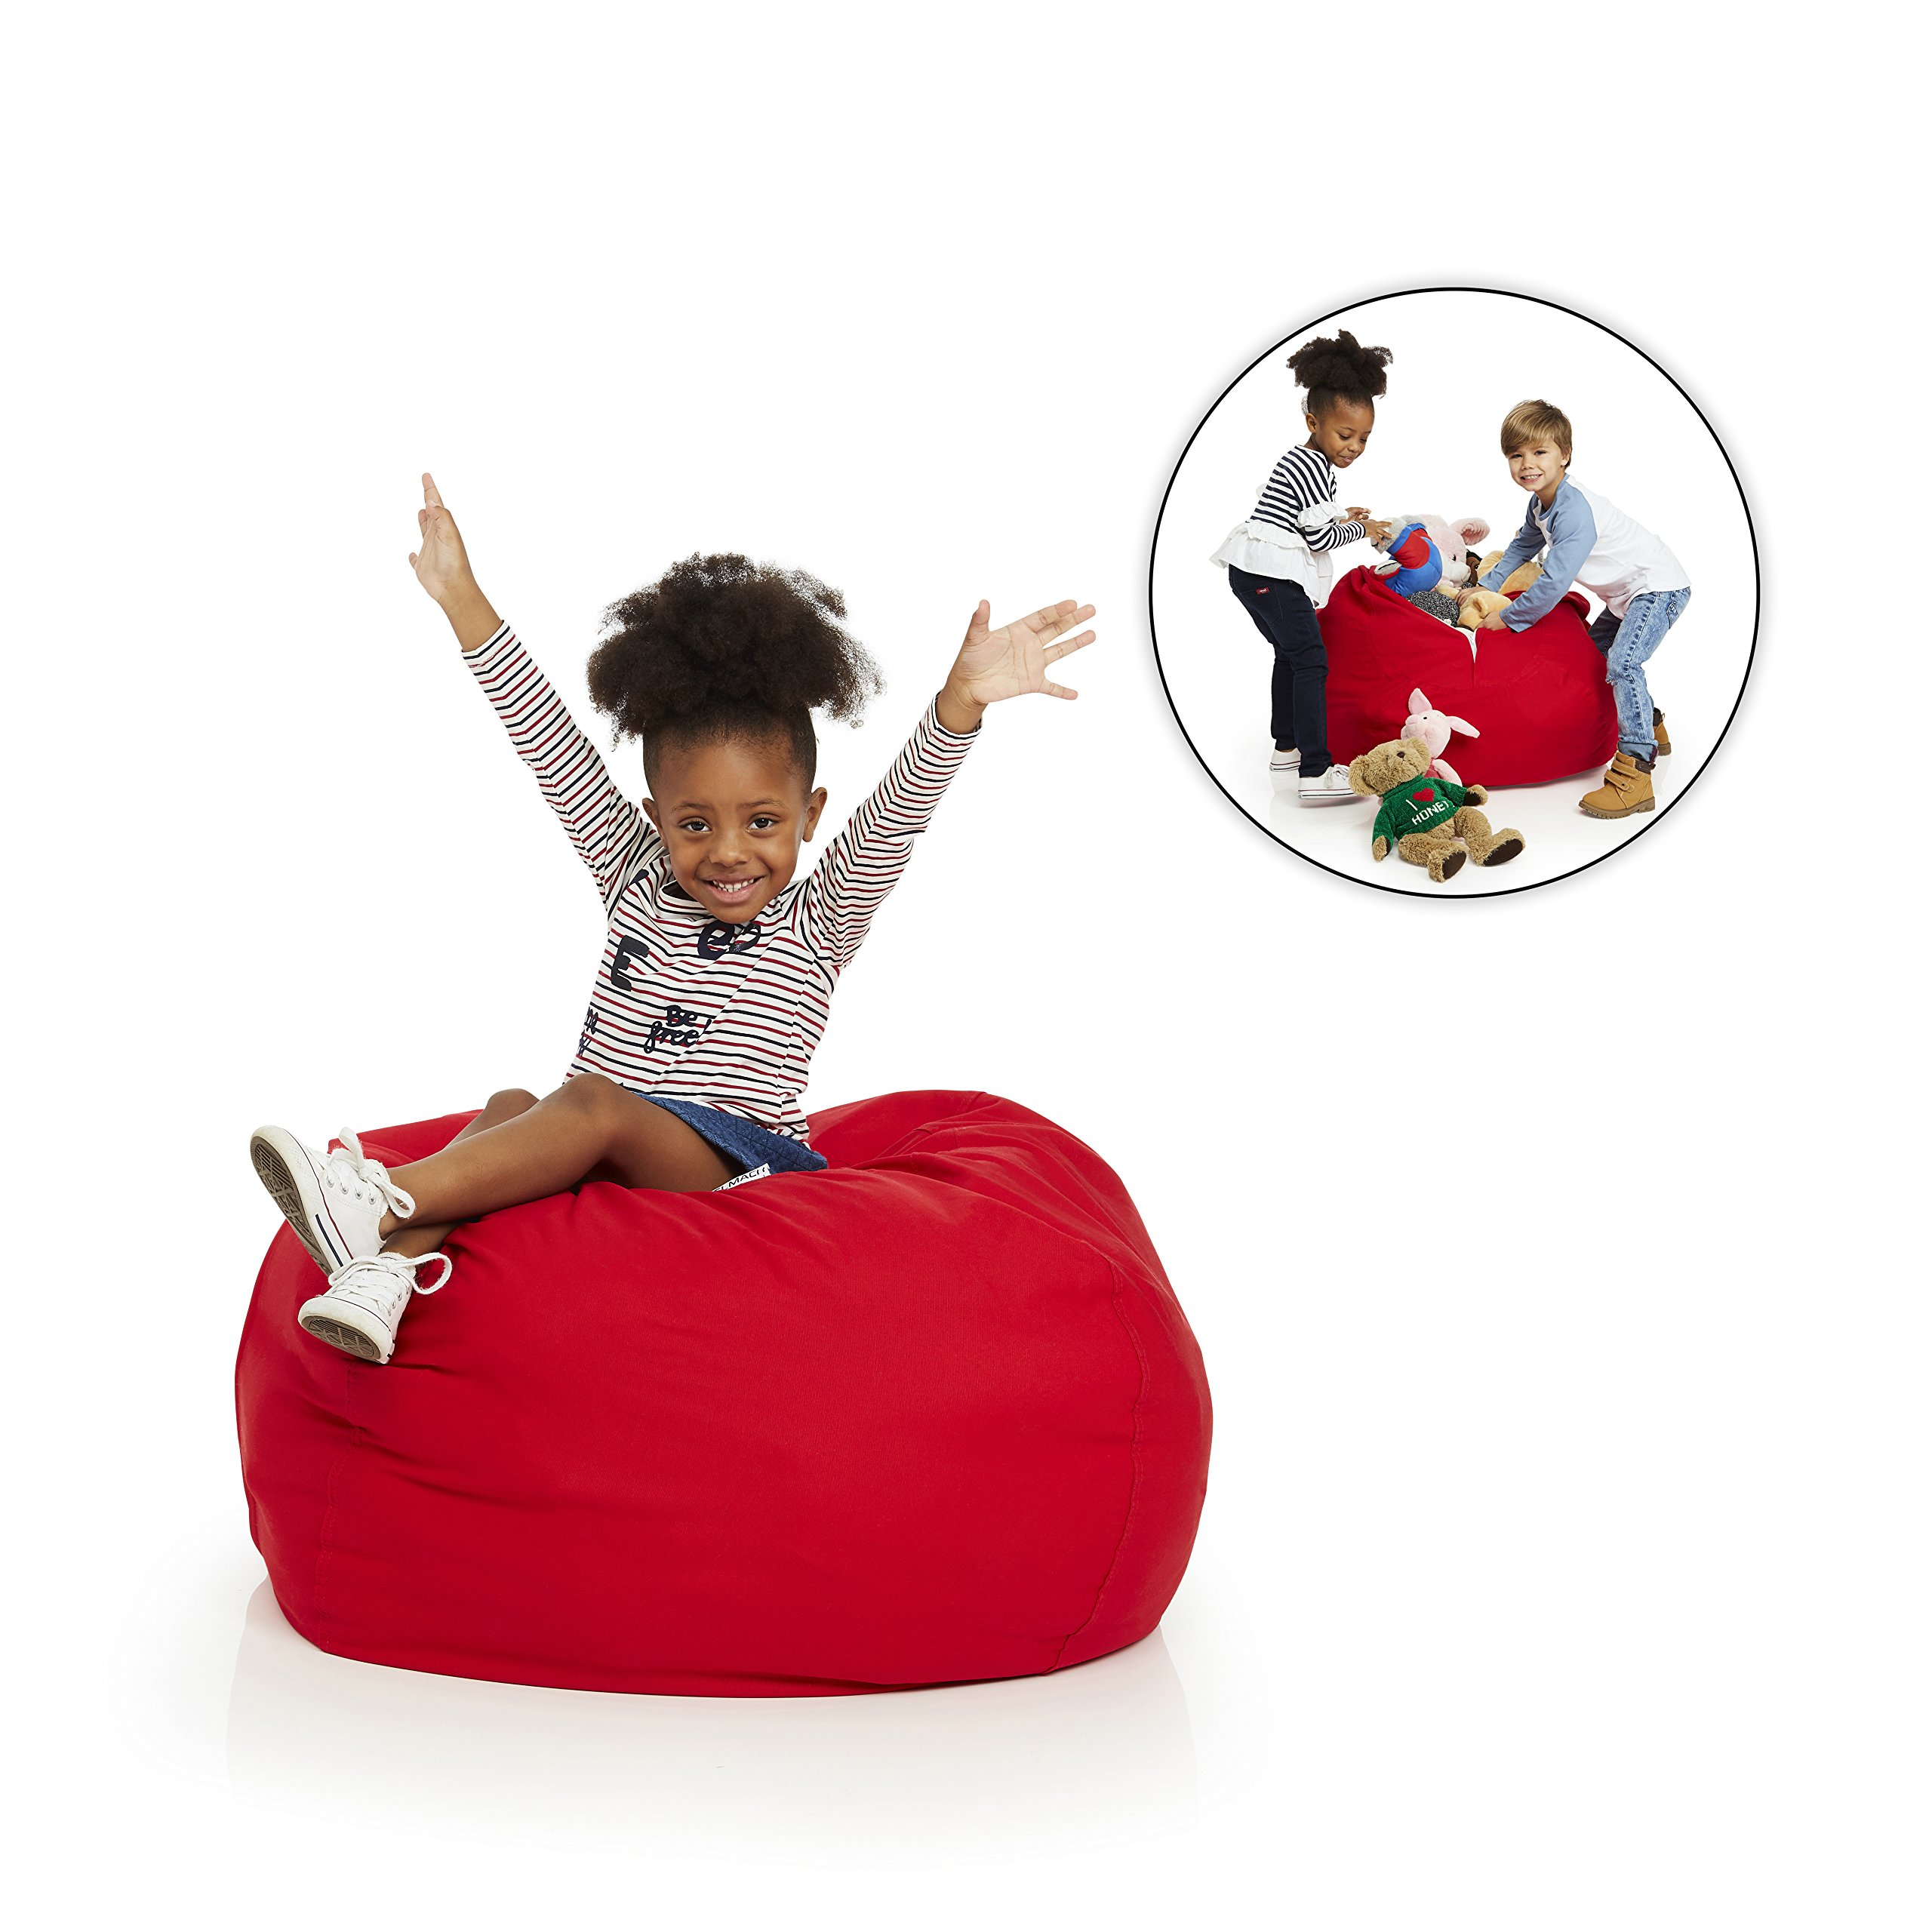 Delmach Stuffed Animal Bean Bag | 100% COTTON CANVAS (Red) | PREMIUM QUALITY GUARANTEED | Storage Bean Bag Cover | Cool Kids Chair | For Room Organization | Toy Holder | EXTRA LARGE 38'' by Delmach